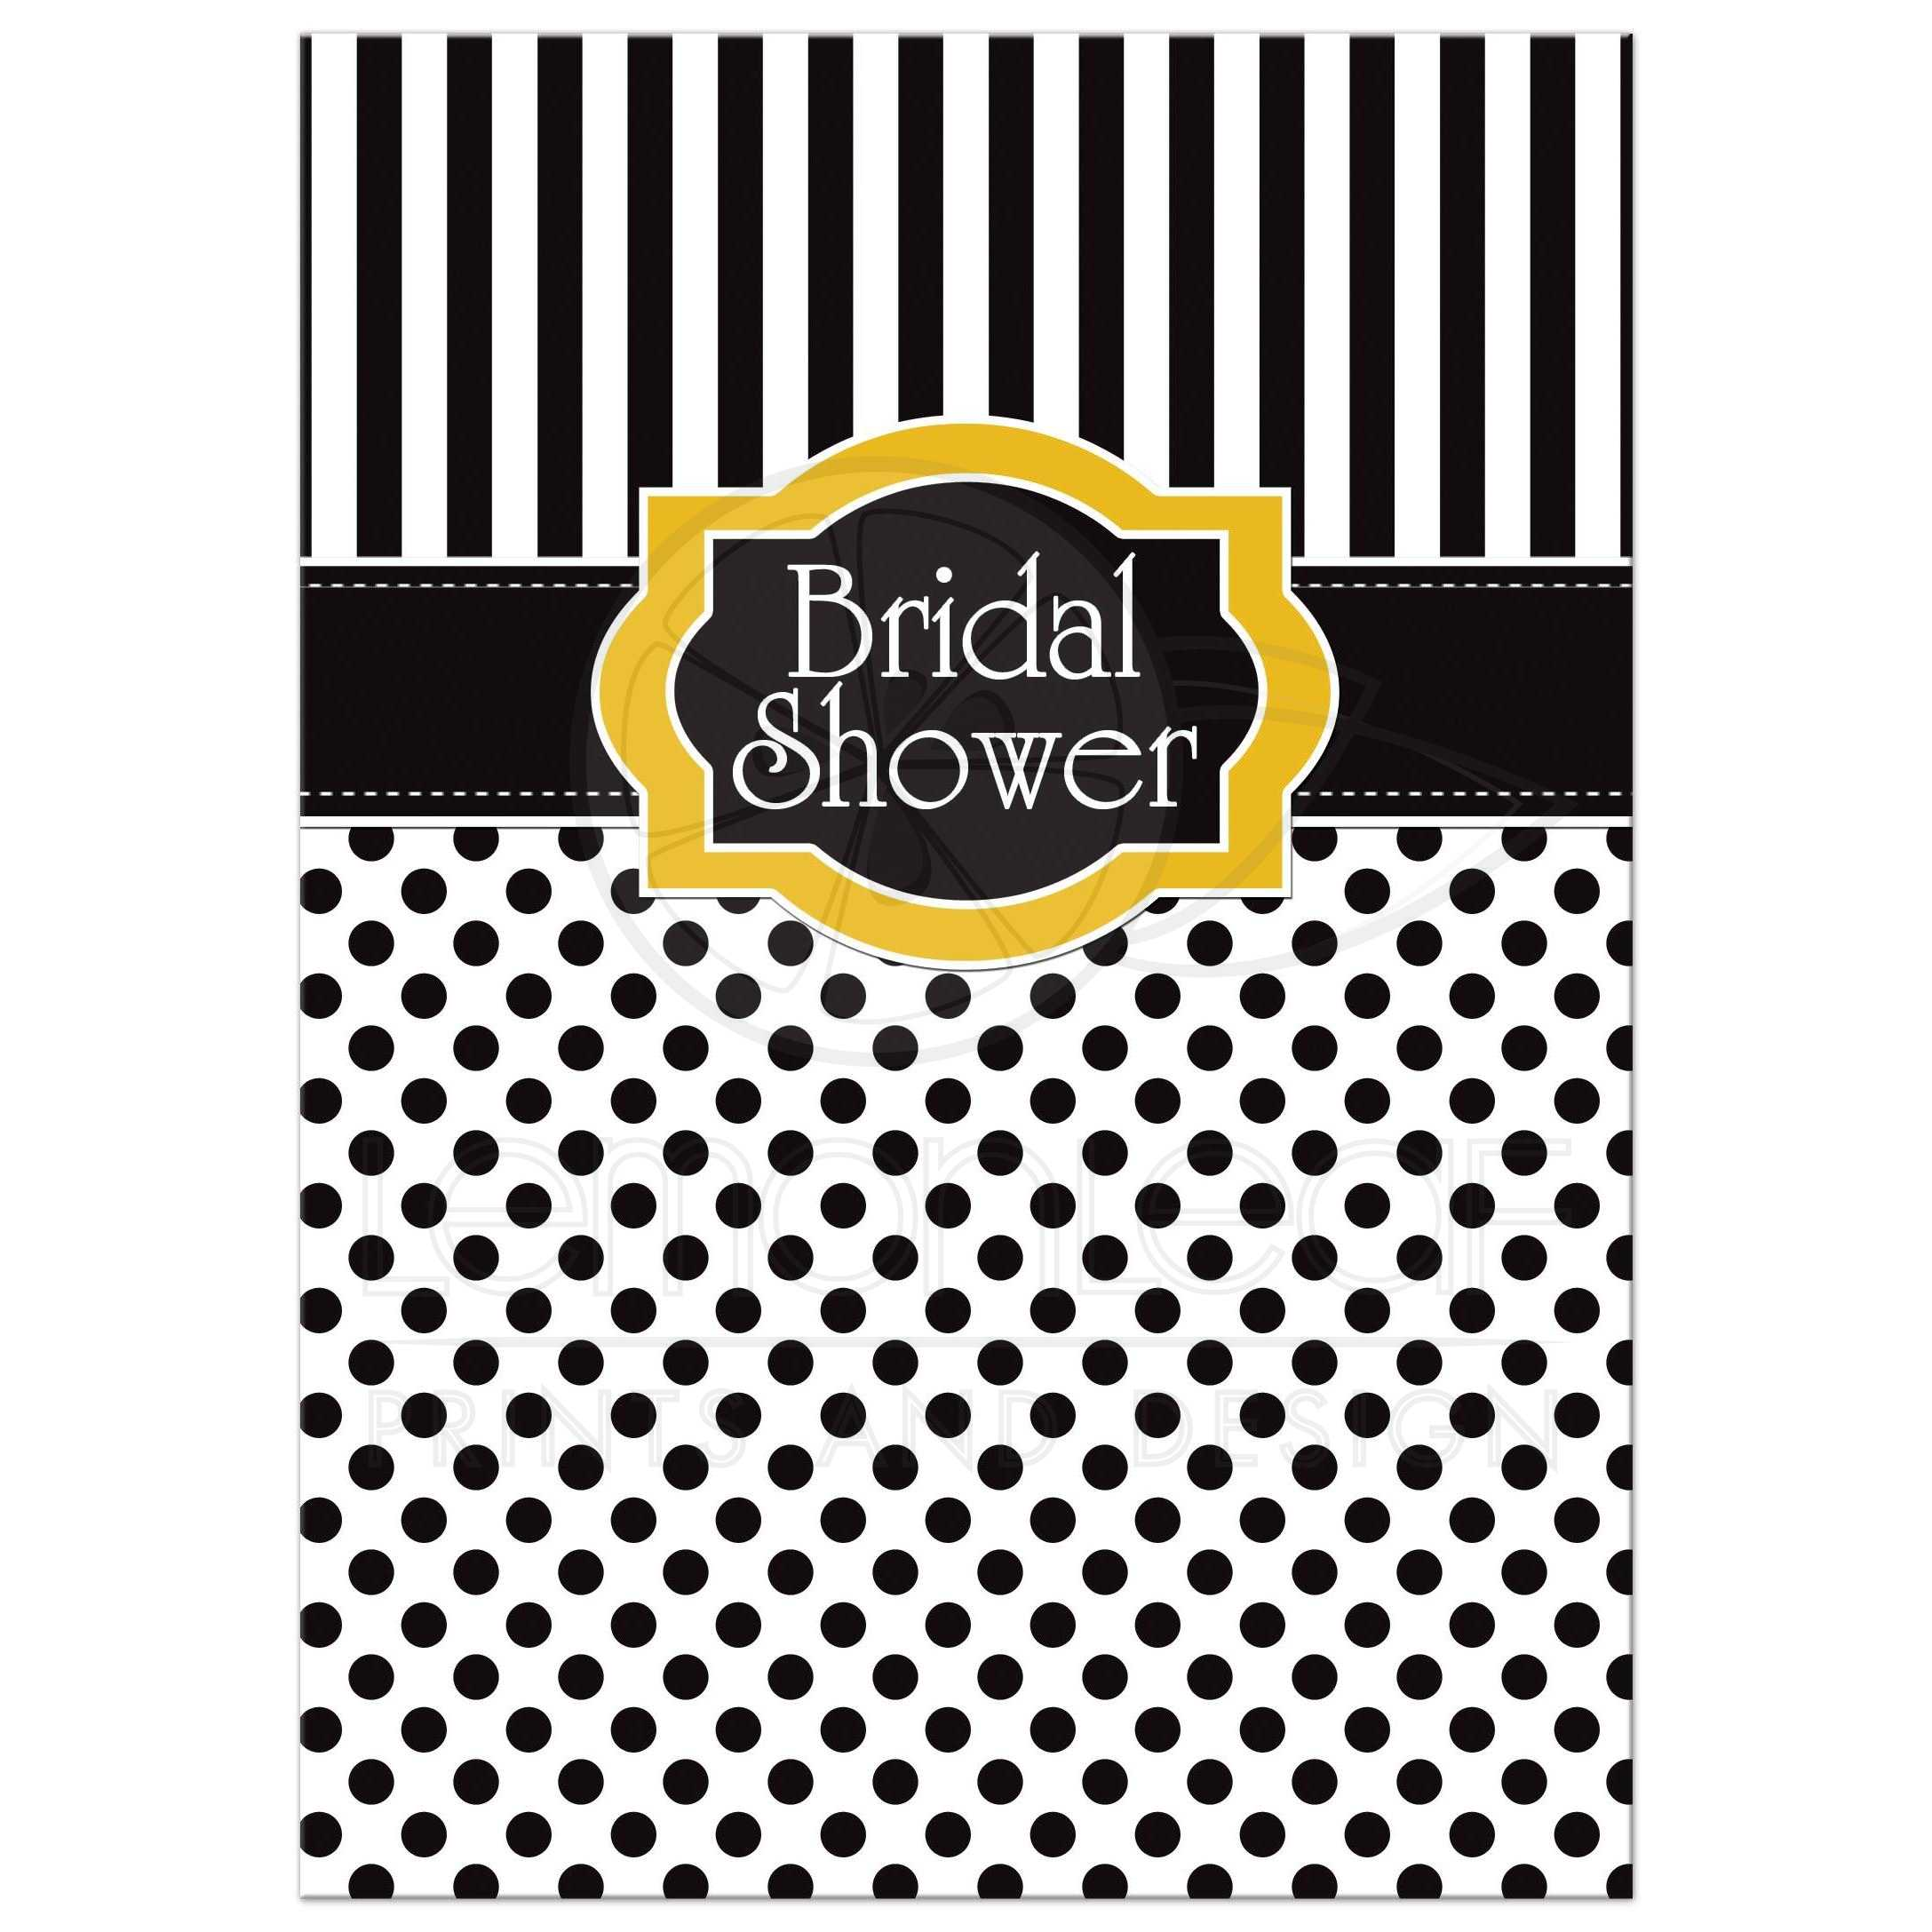 great black and white striped bridal or wedding shower invitation with polka dots and yellow accents